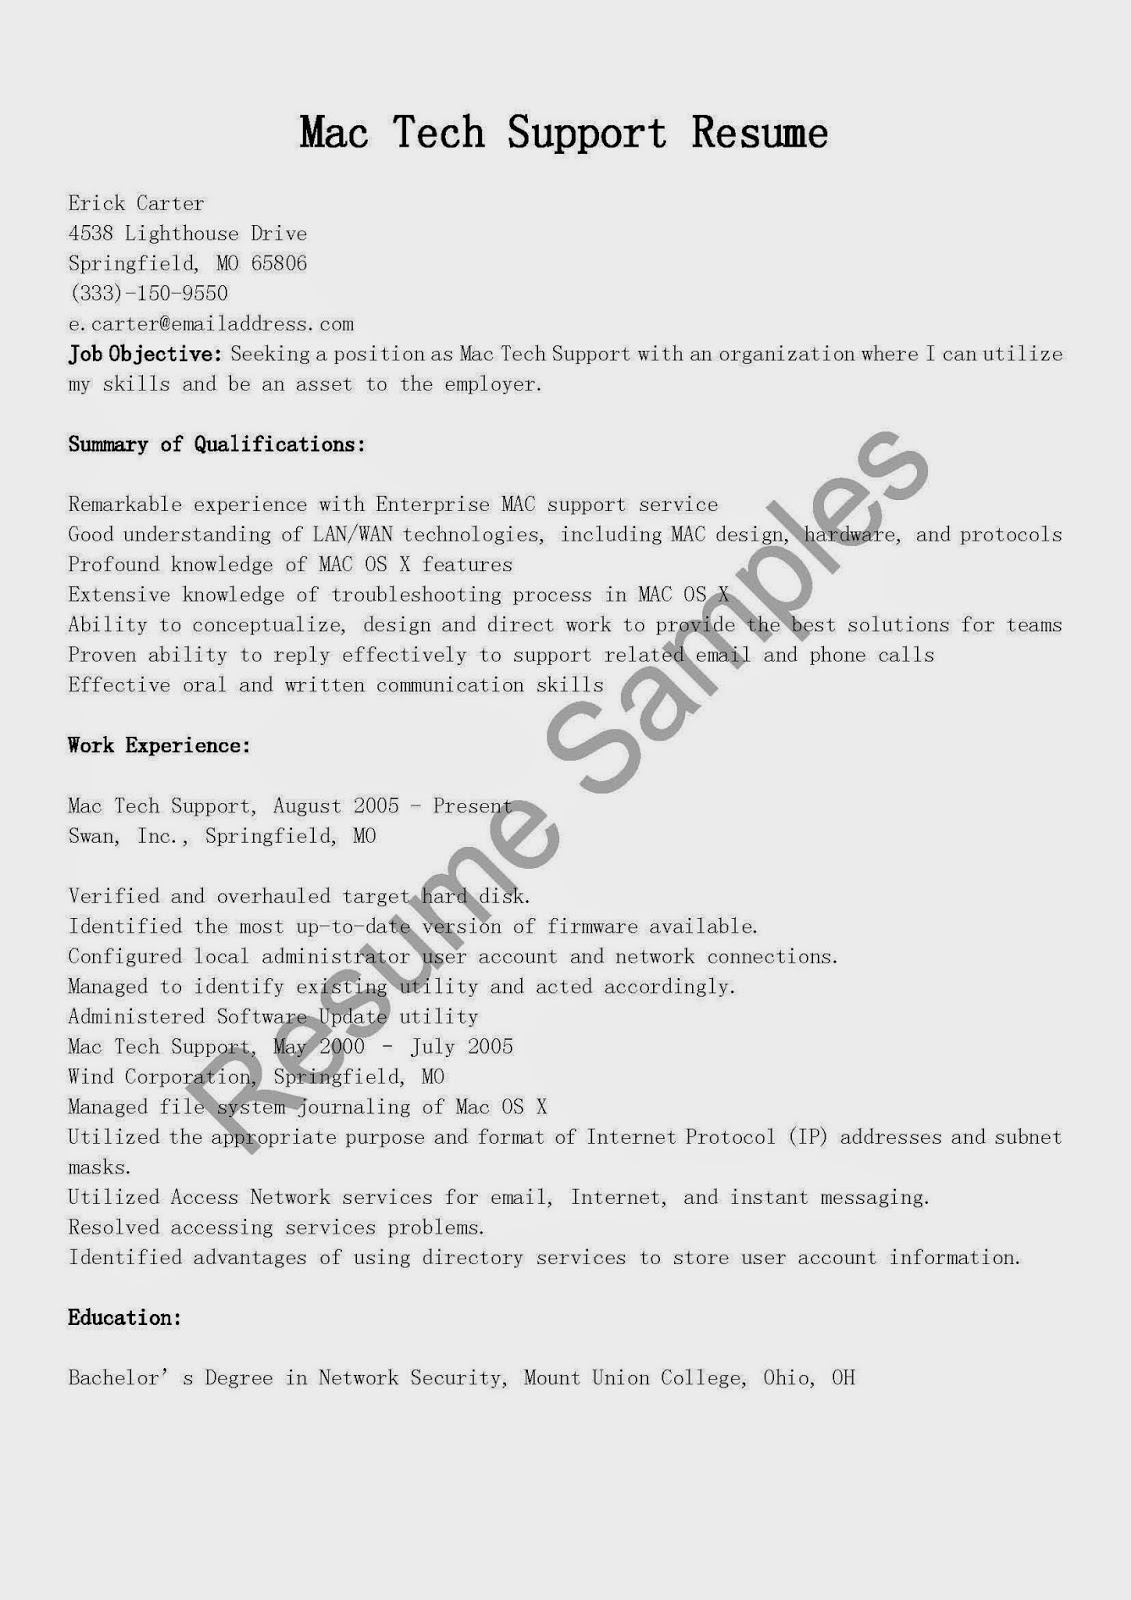 oral and written skills resume